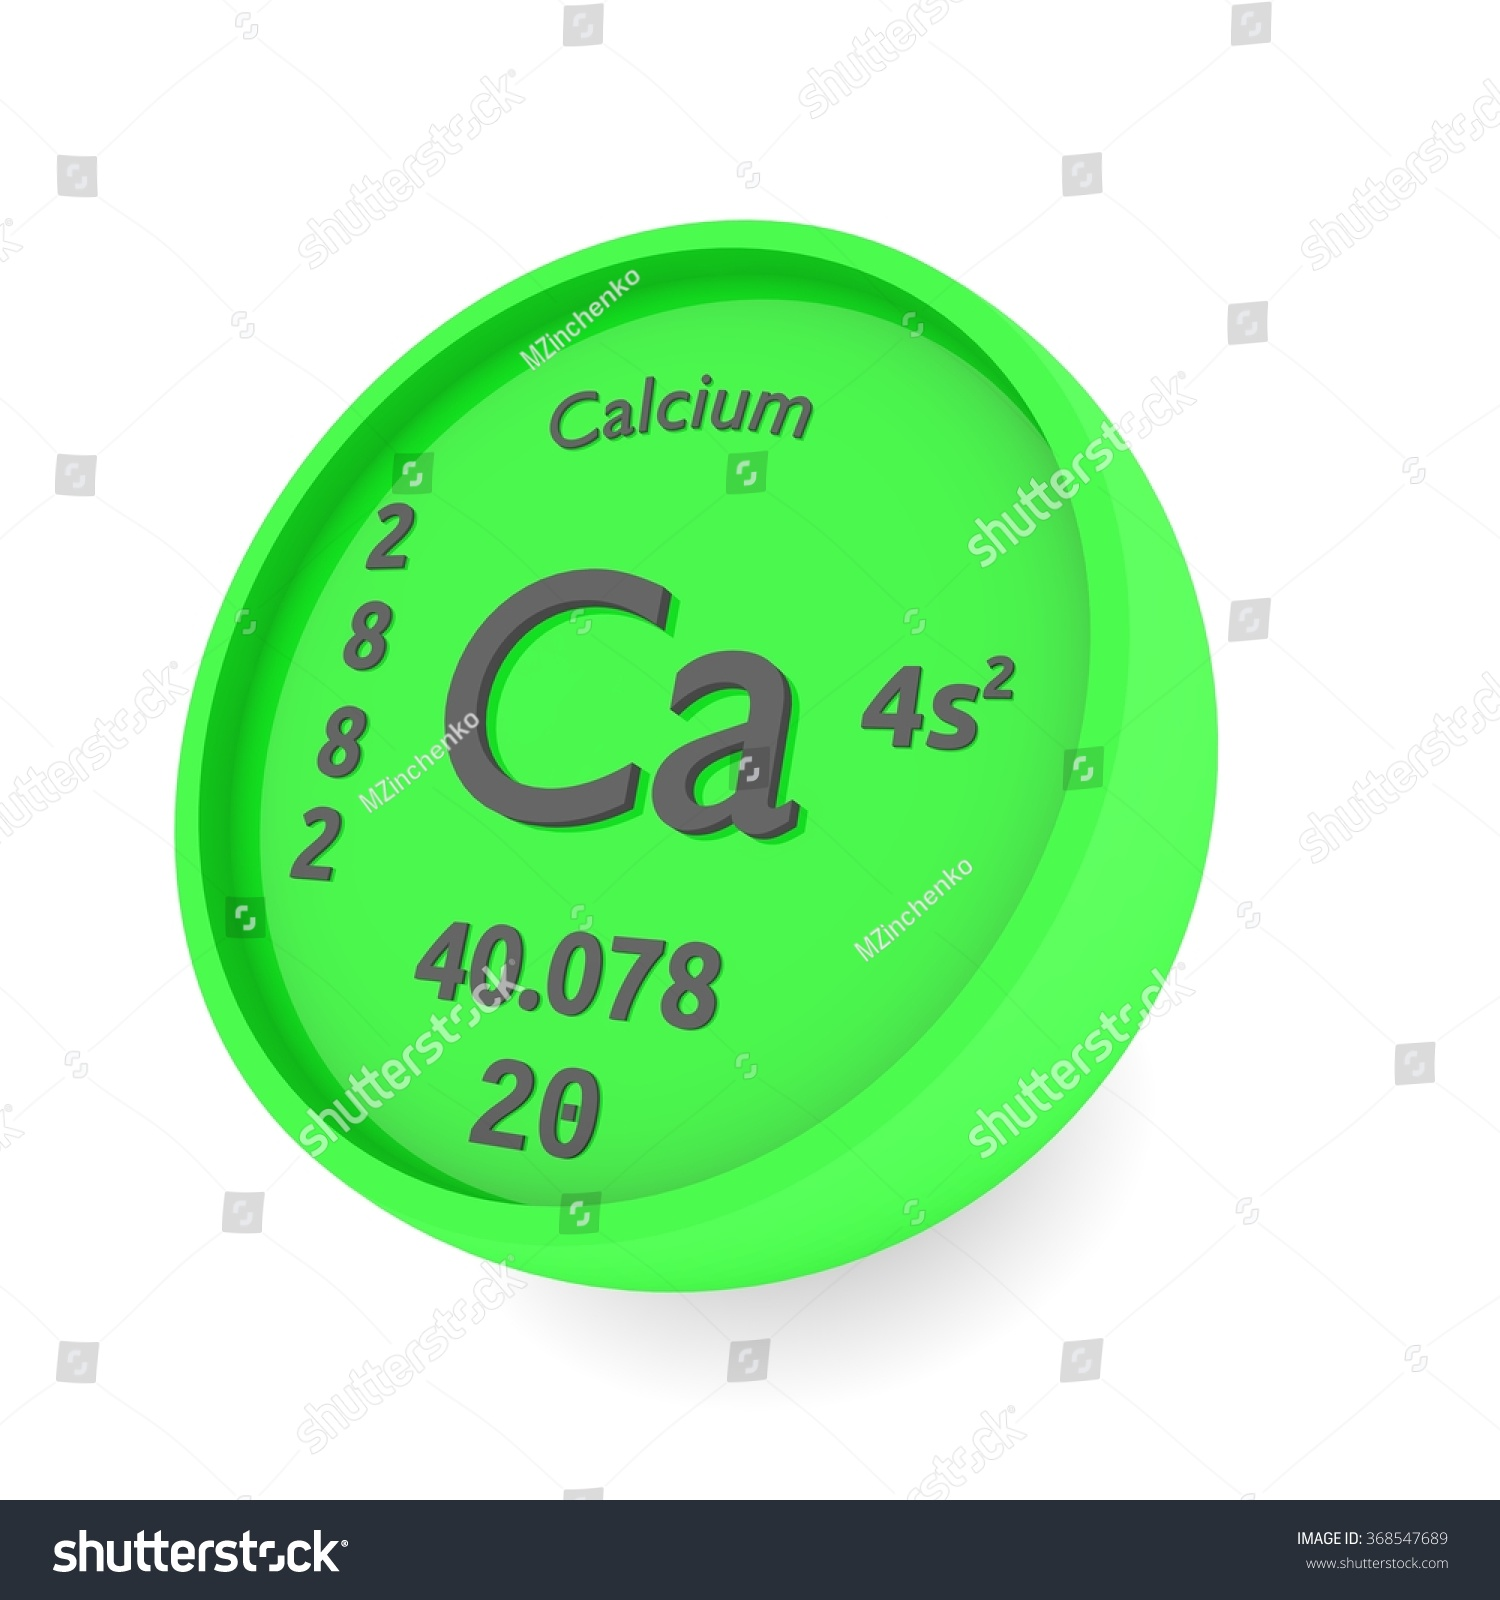 Calcium chemical element sin periodic table stock illustration calcium chemical element sin in periodic table gamestrikefo Choice Image